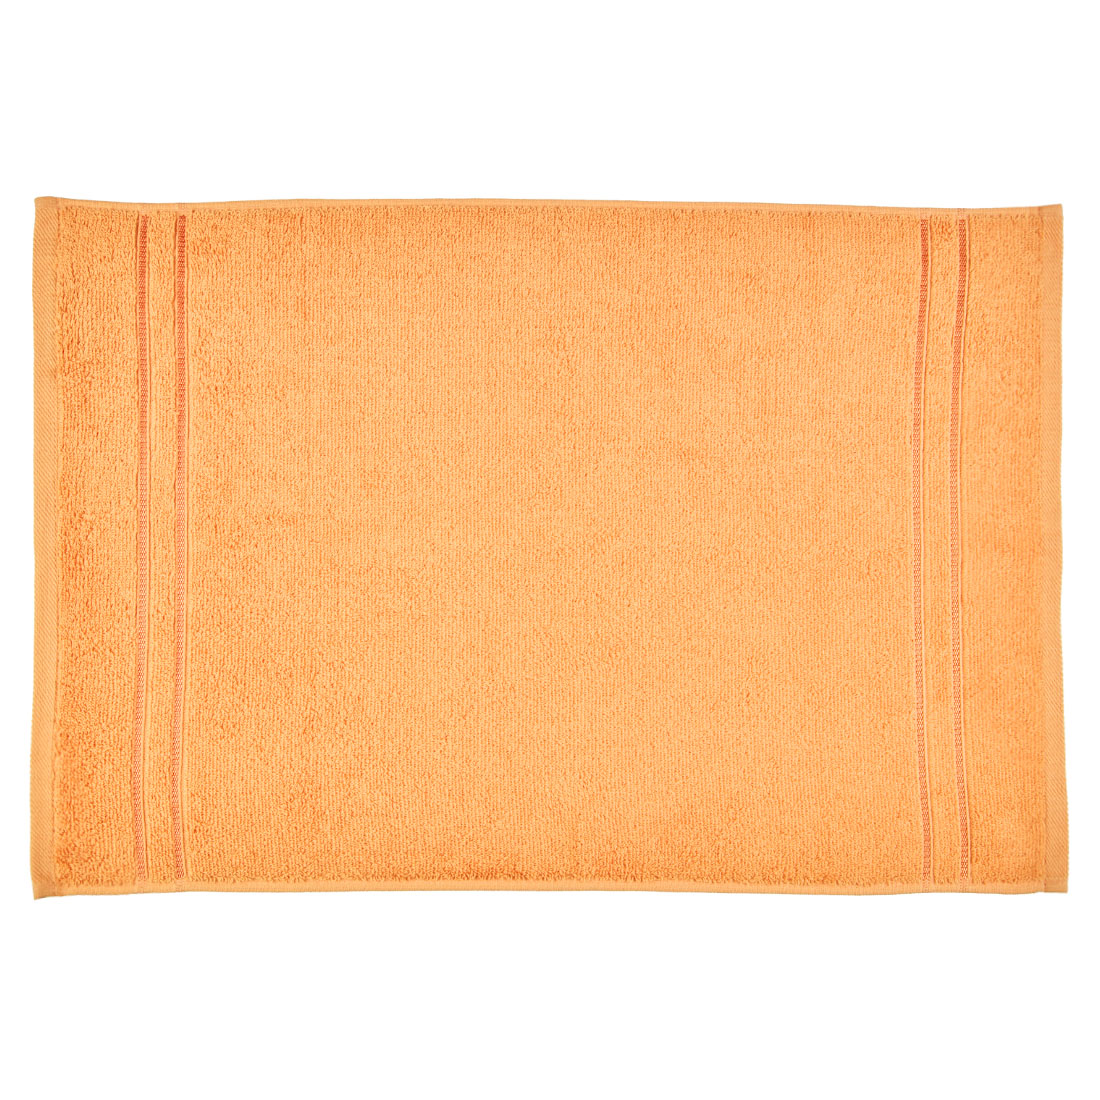 Hand Towel Nora Mustard Cotton Hand Towels in Cotton Colour by Living Essence